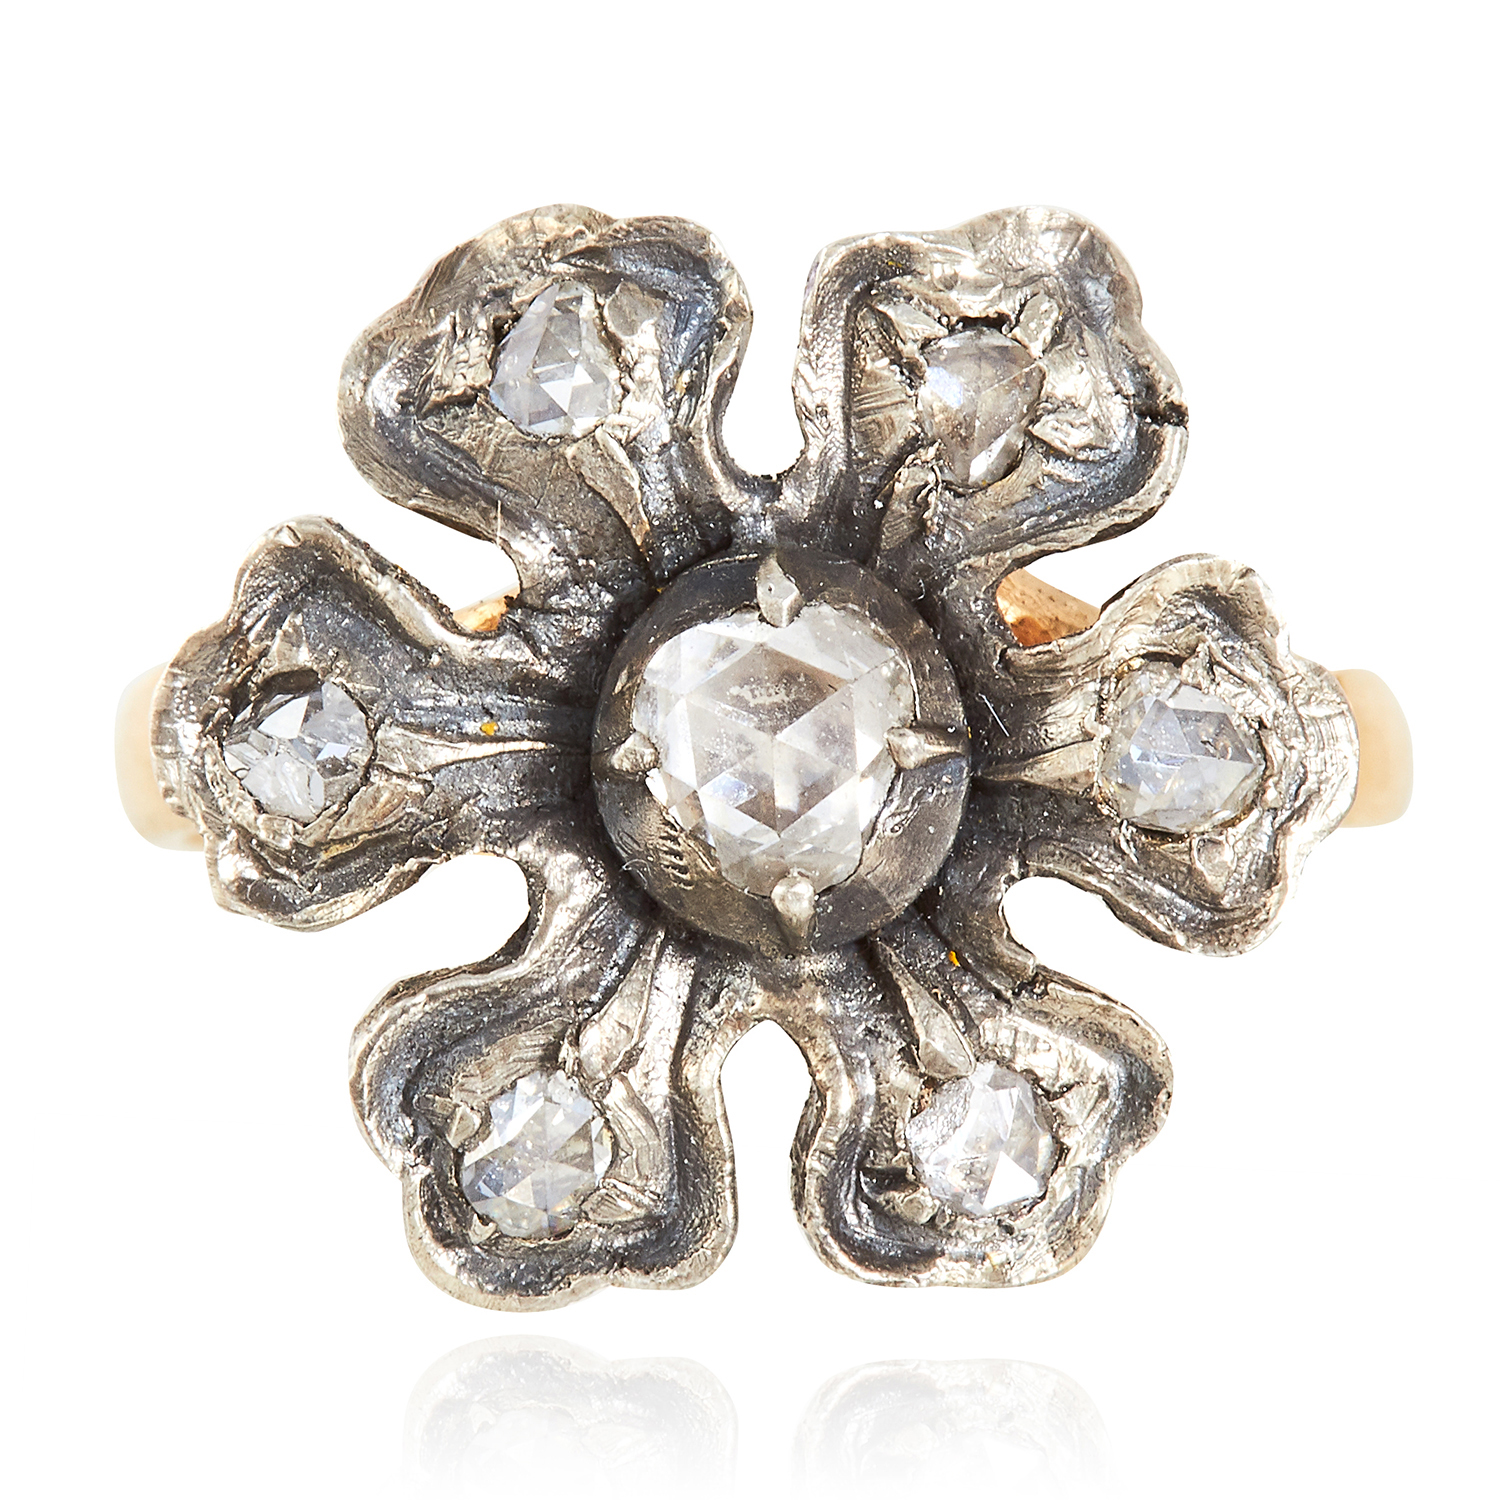 A DIAMOND RING depicting a flower set with rose cut diamonds, 4.52g.